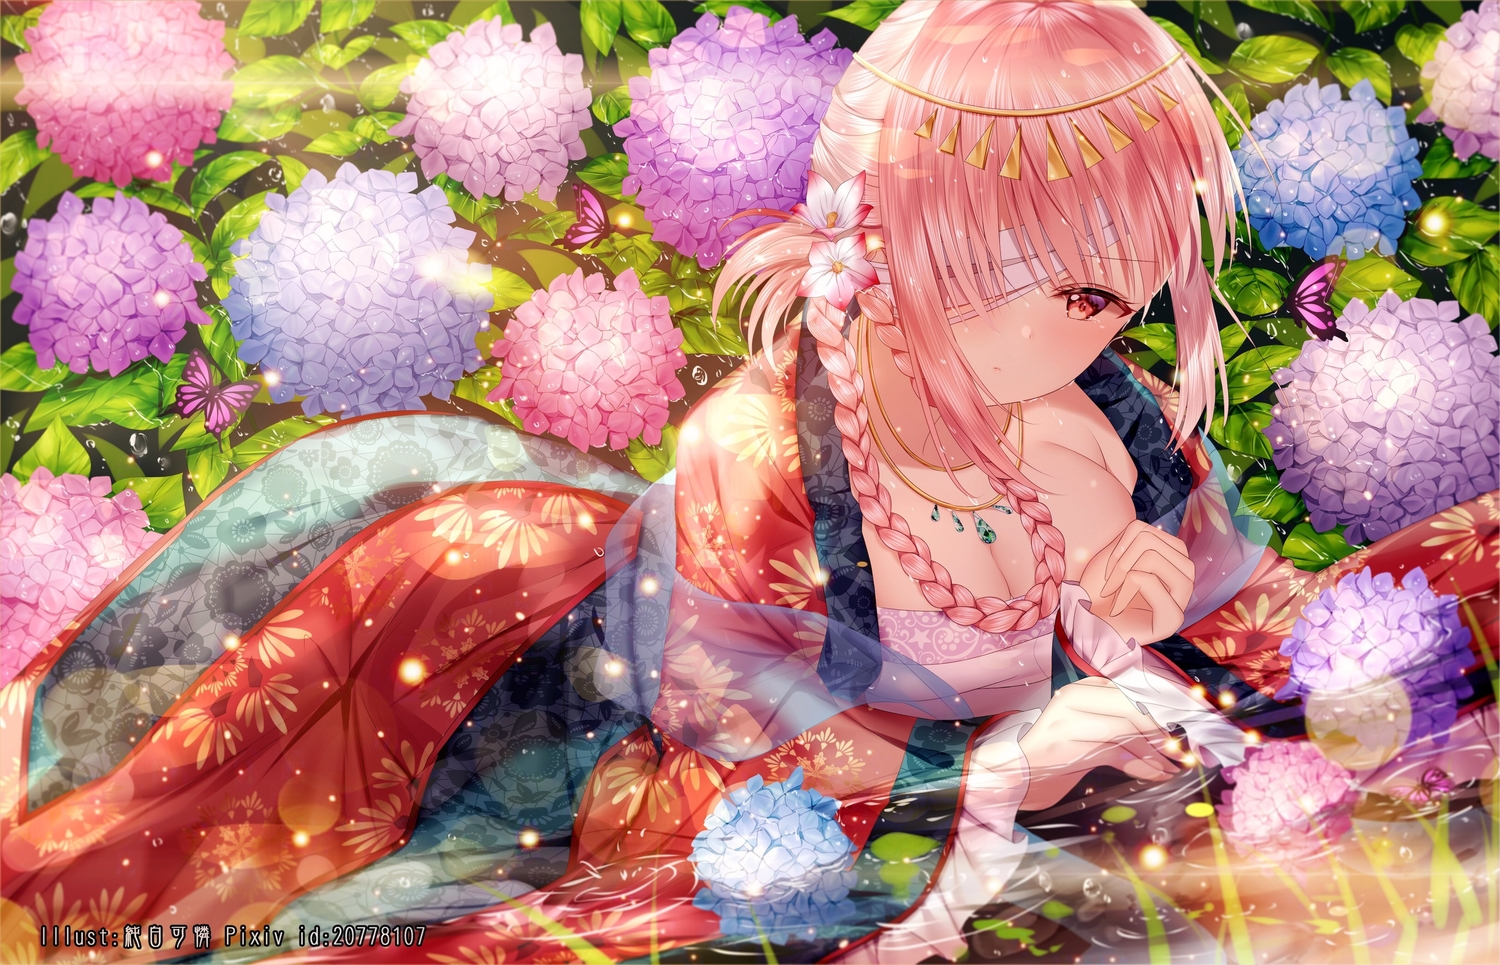 bandage braids breasts butterfly chinese_clothes cleavage eyepatch fate/grand_order fate_(series) florence_nightingale flowers headdress junpaku_karen long_hair necklace pink_eyes pink_hair see_through water watermark wet